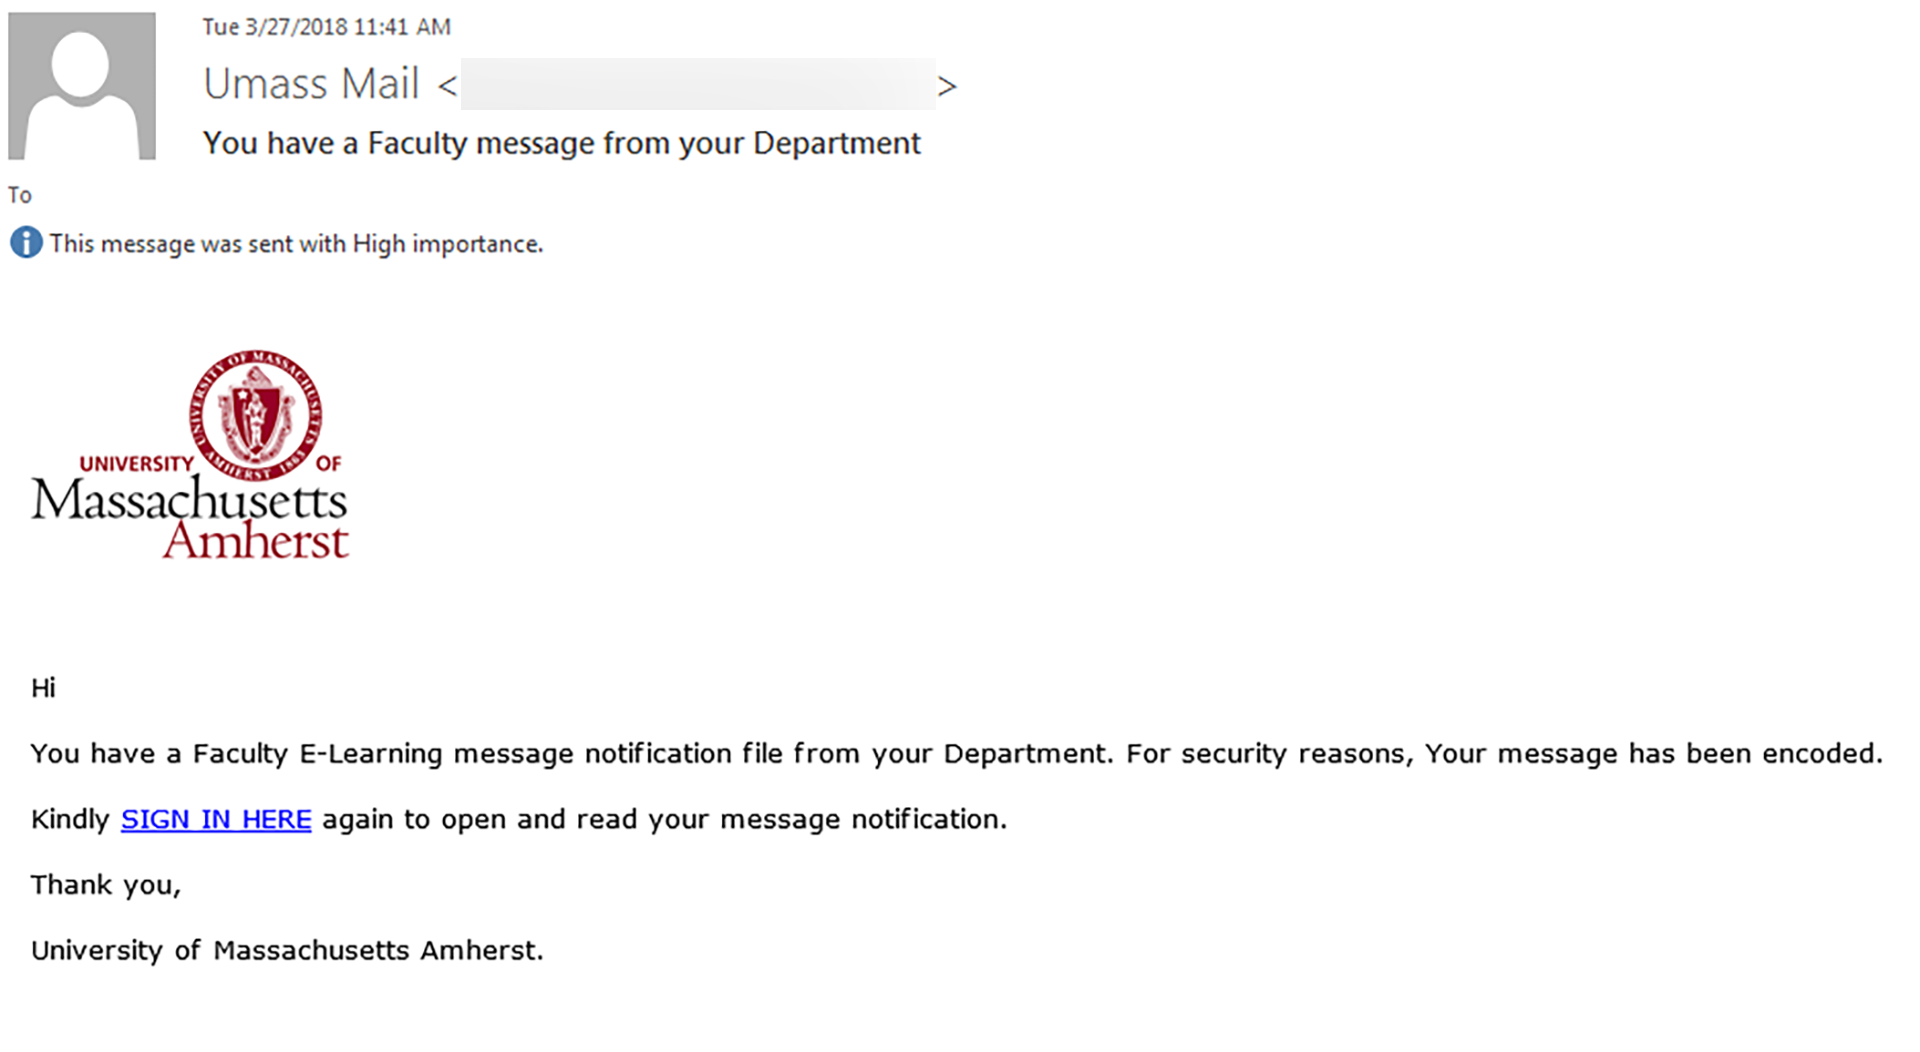 Phishing example that appears to have been sent by 'UMASS MAIL'